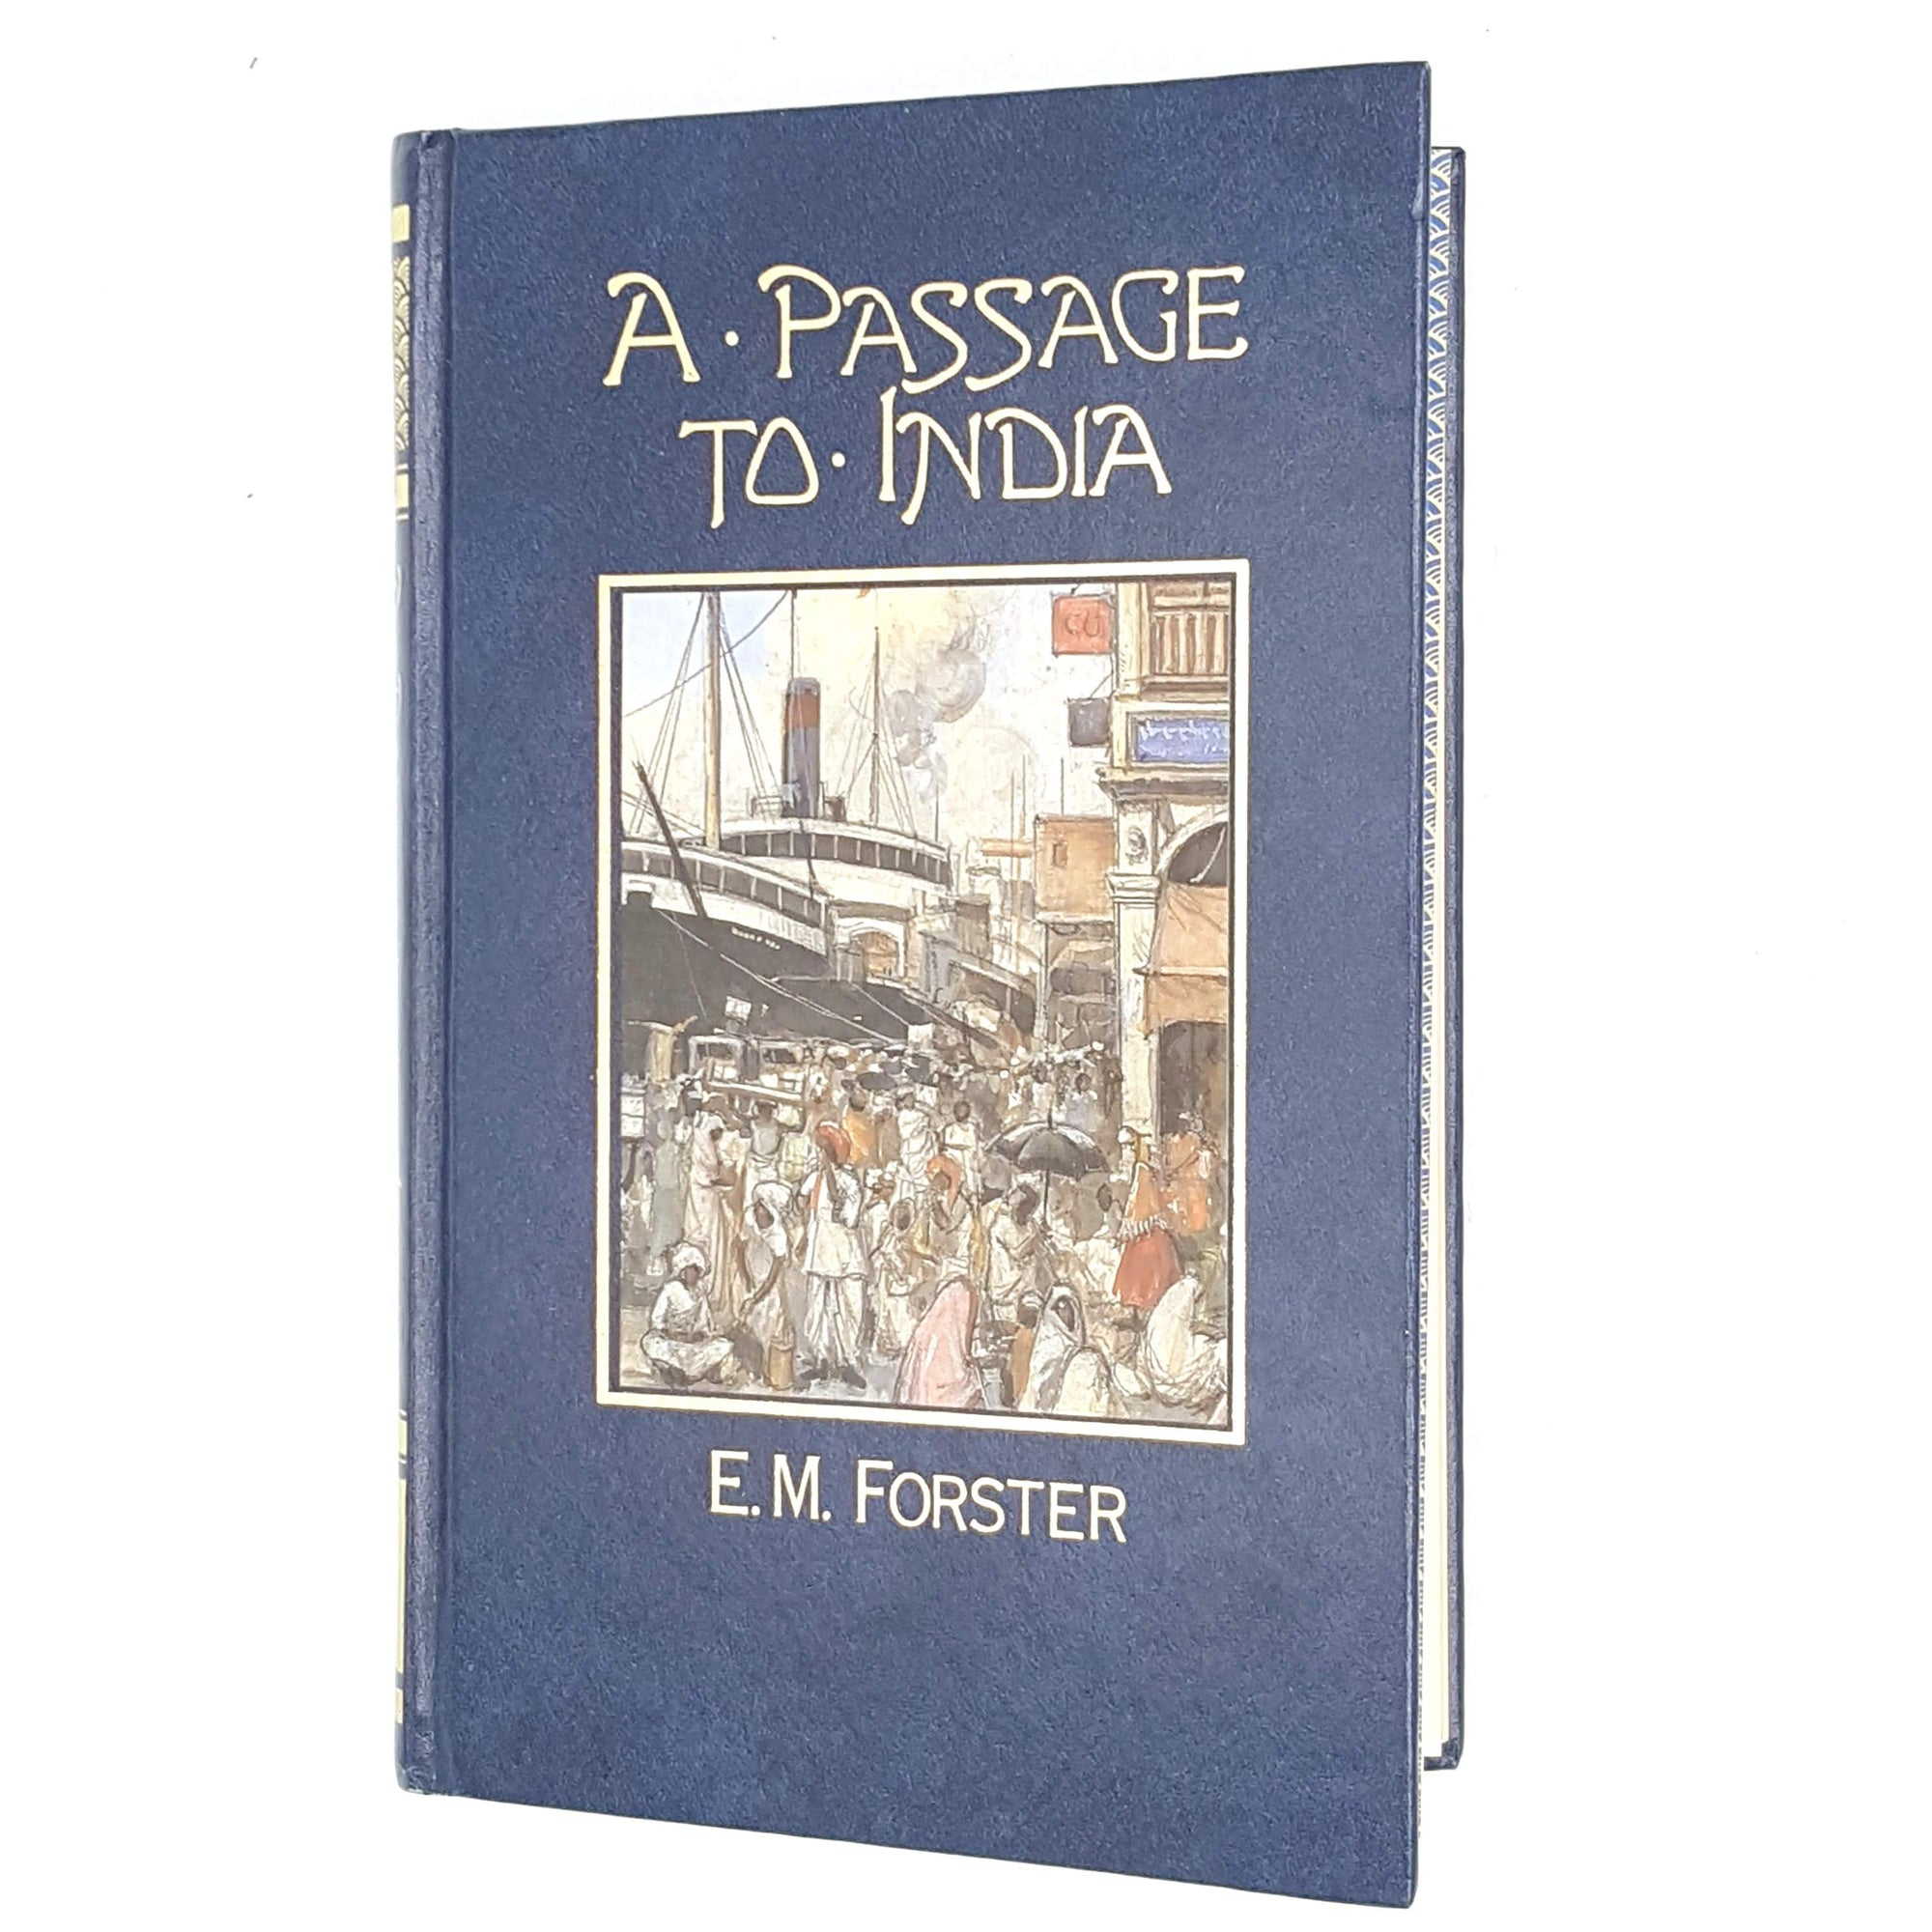 E. M. Forster's A Passage to India Marshall Cavendish Edition